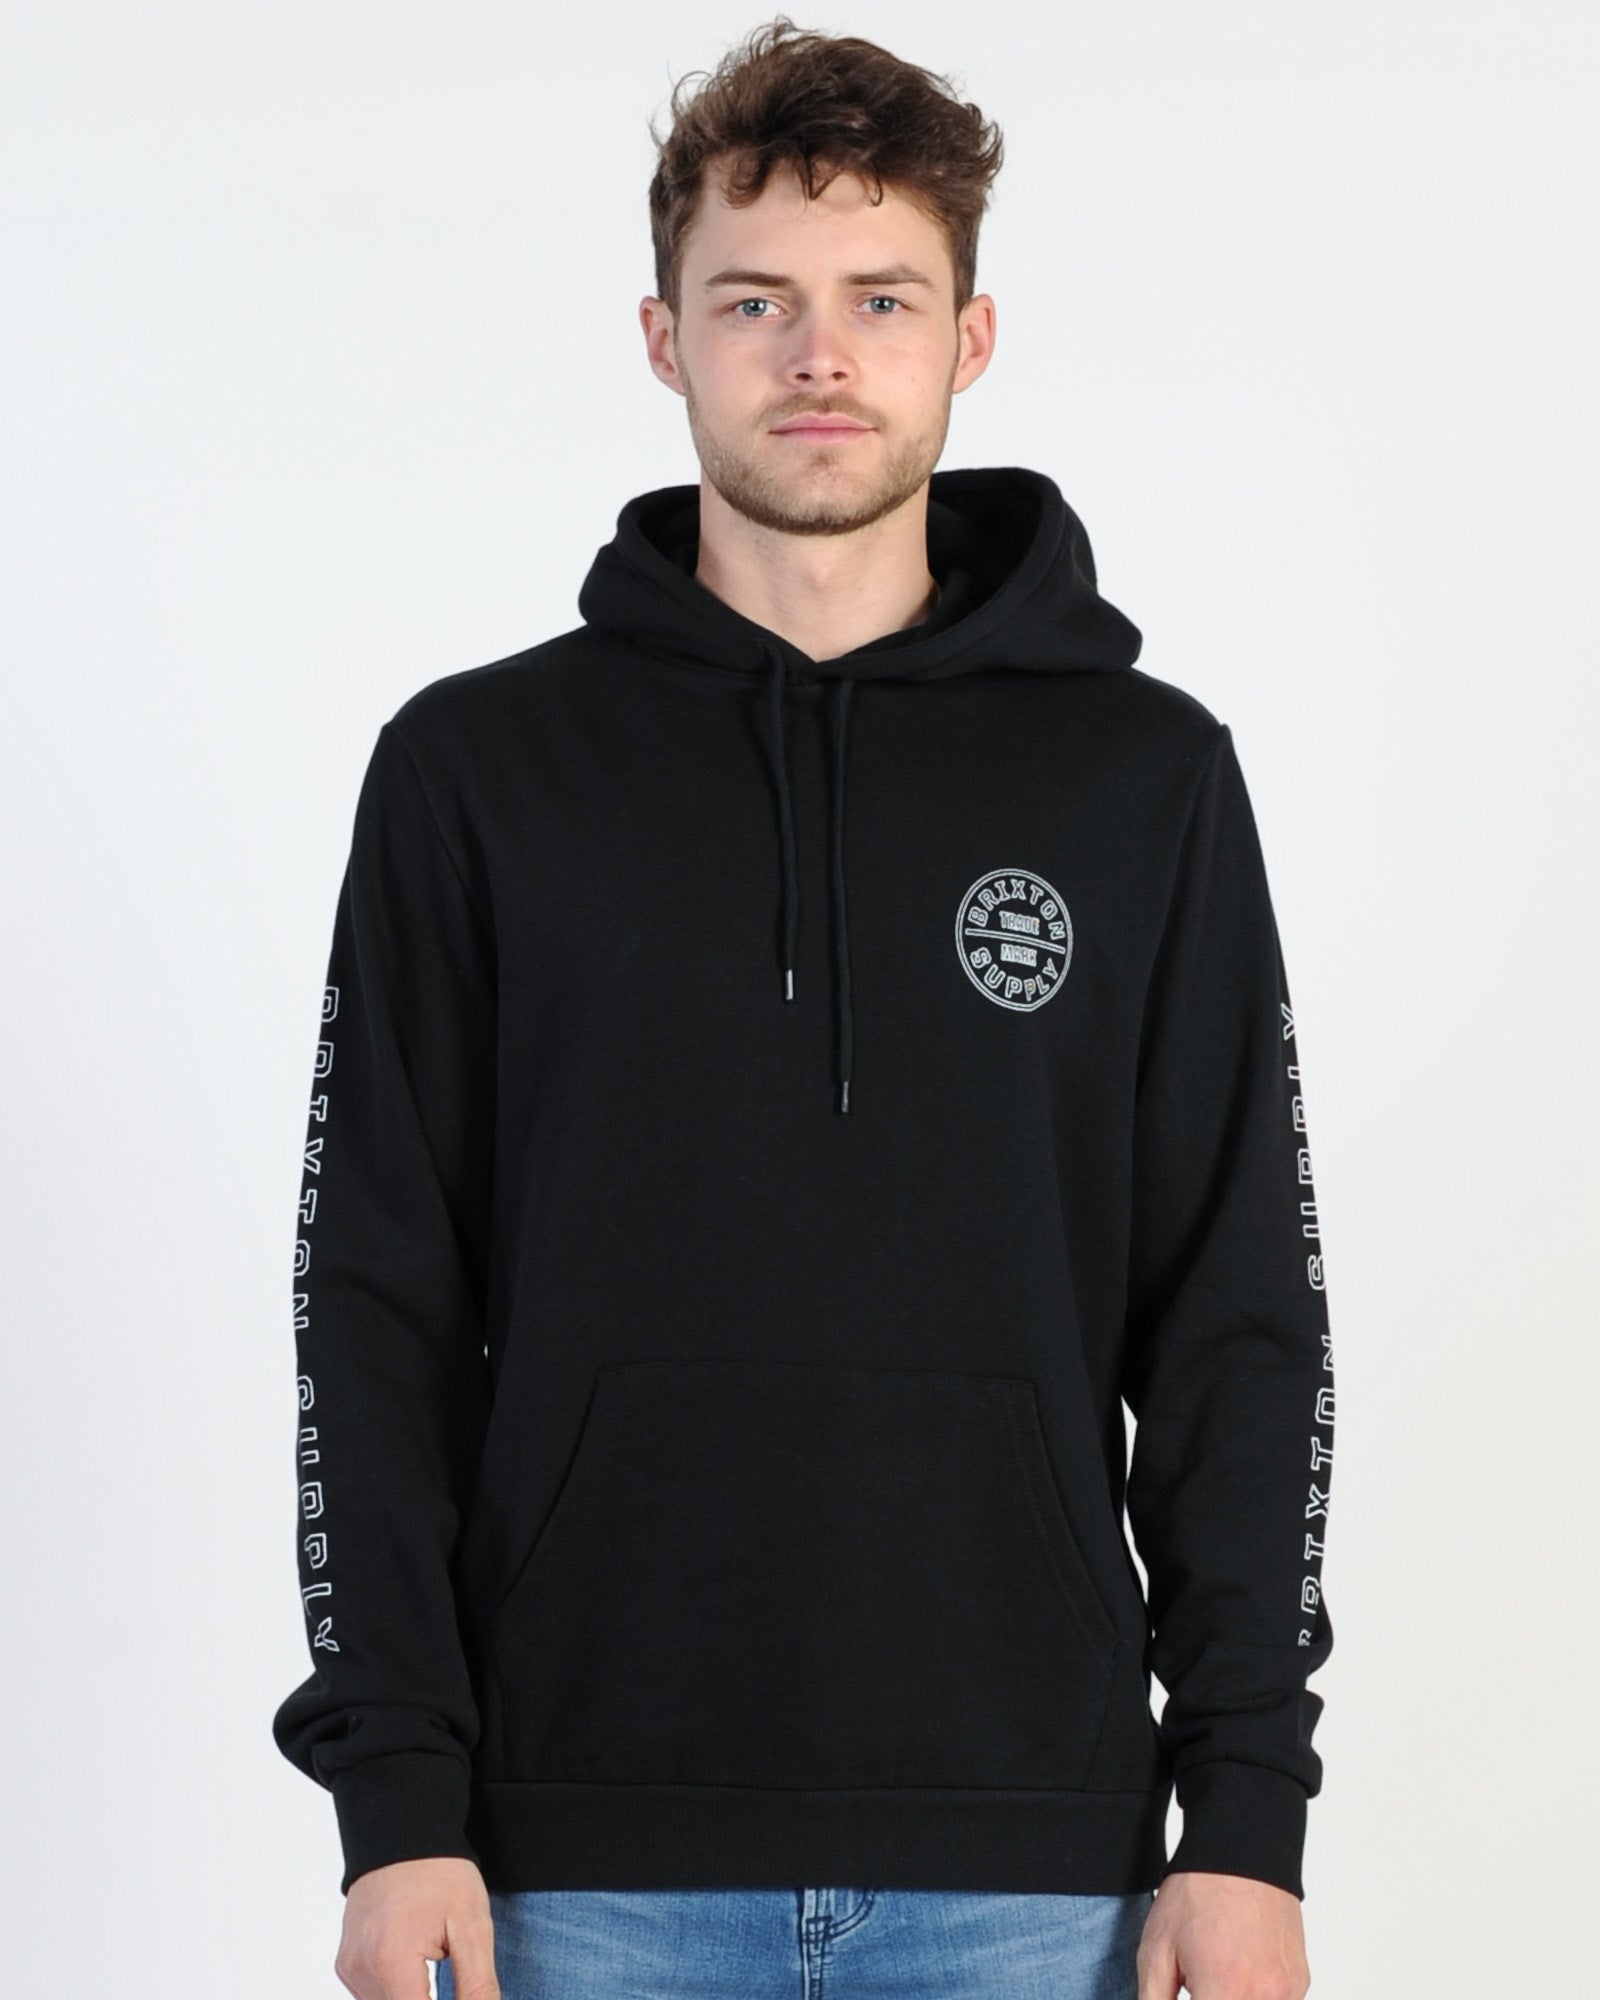 Brixton Oath Iv Intl Hood Sweat - Black/White